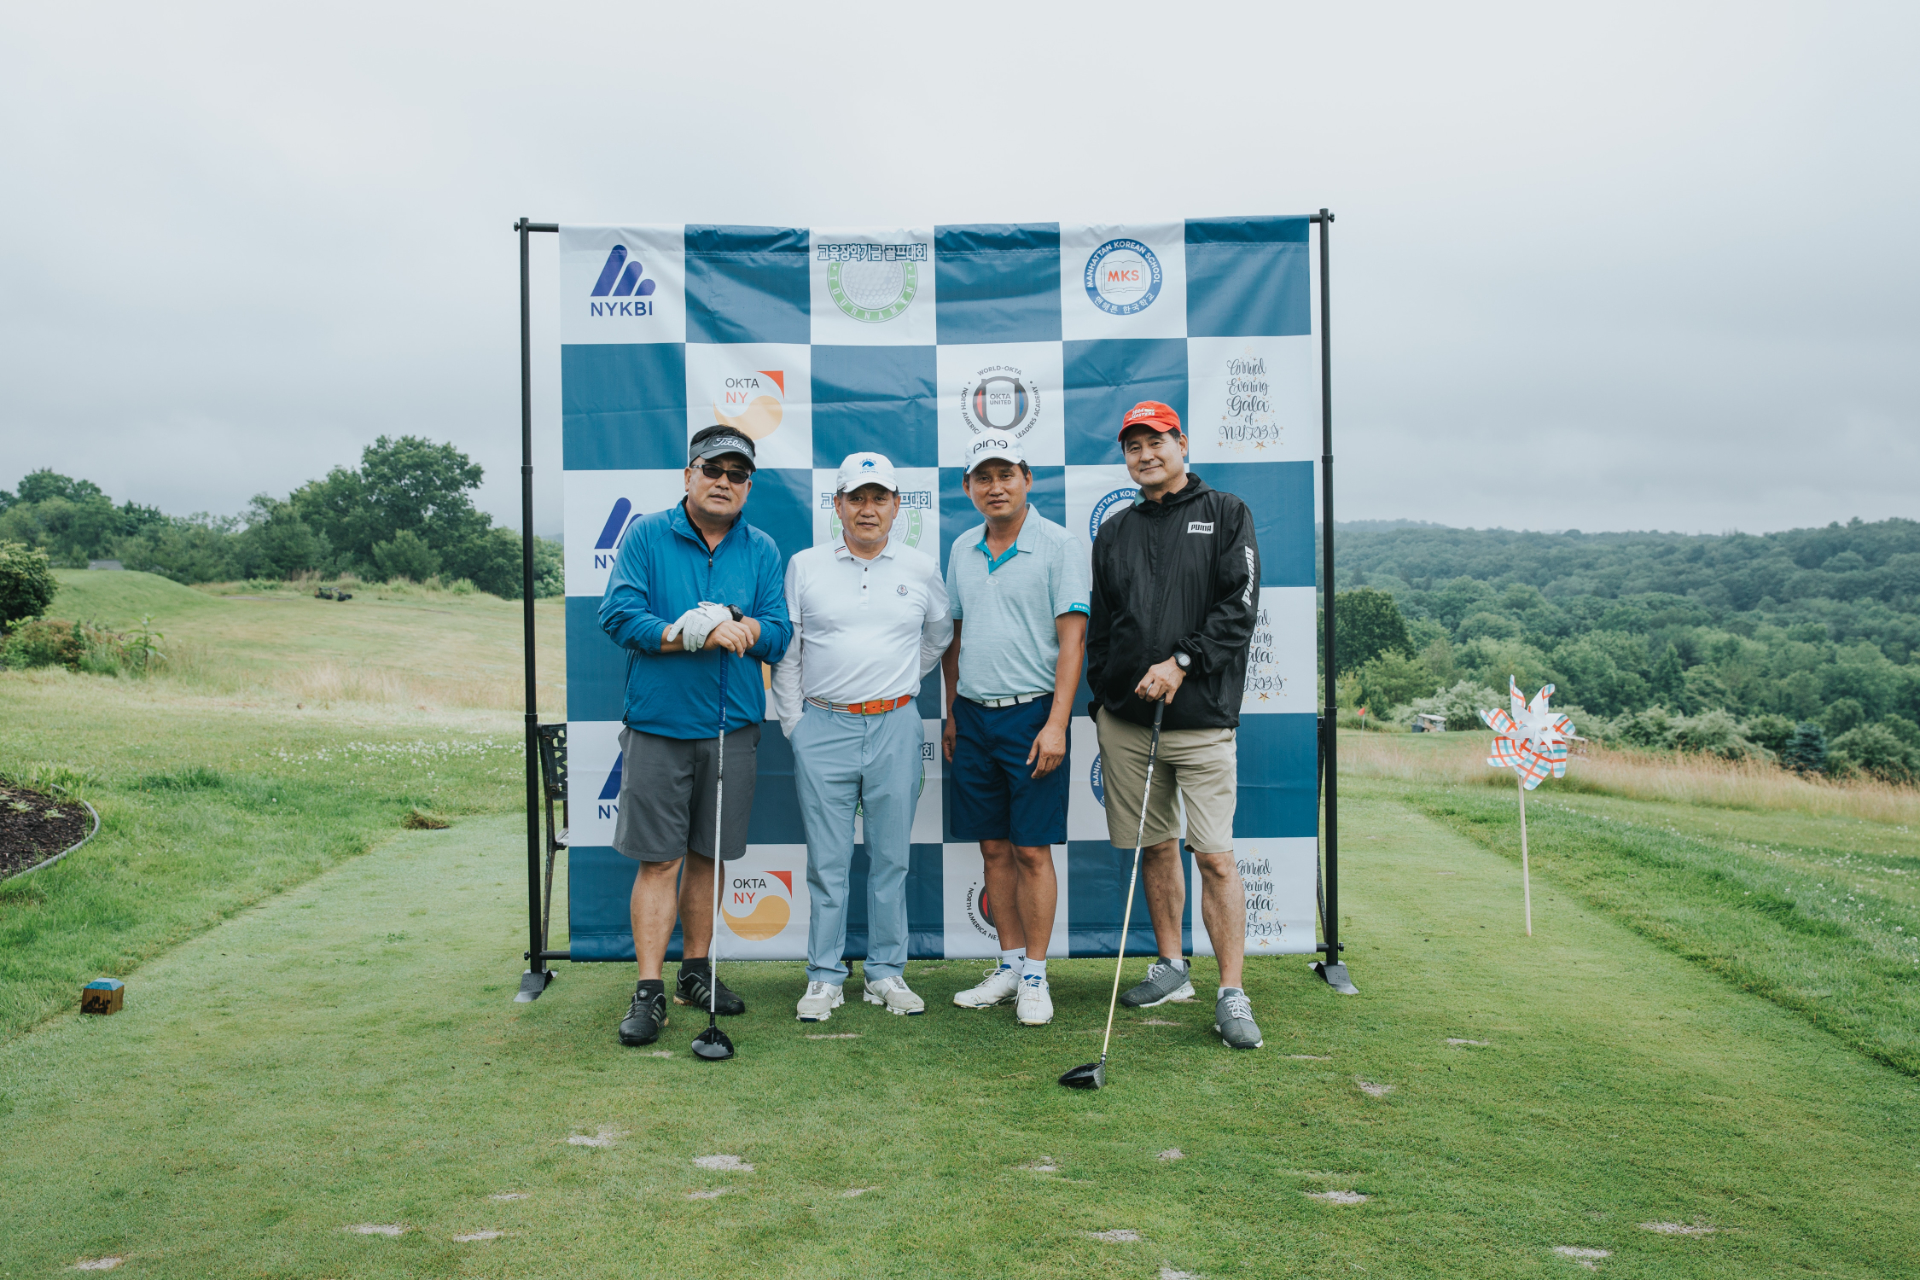 https://nykbi.com/new/wp-content/uploads/2019/07/190619-Scholarship-Fundraising-Golf-Tournament-026.jpg